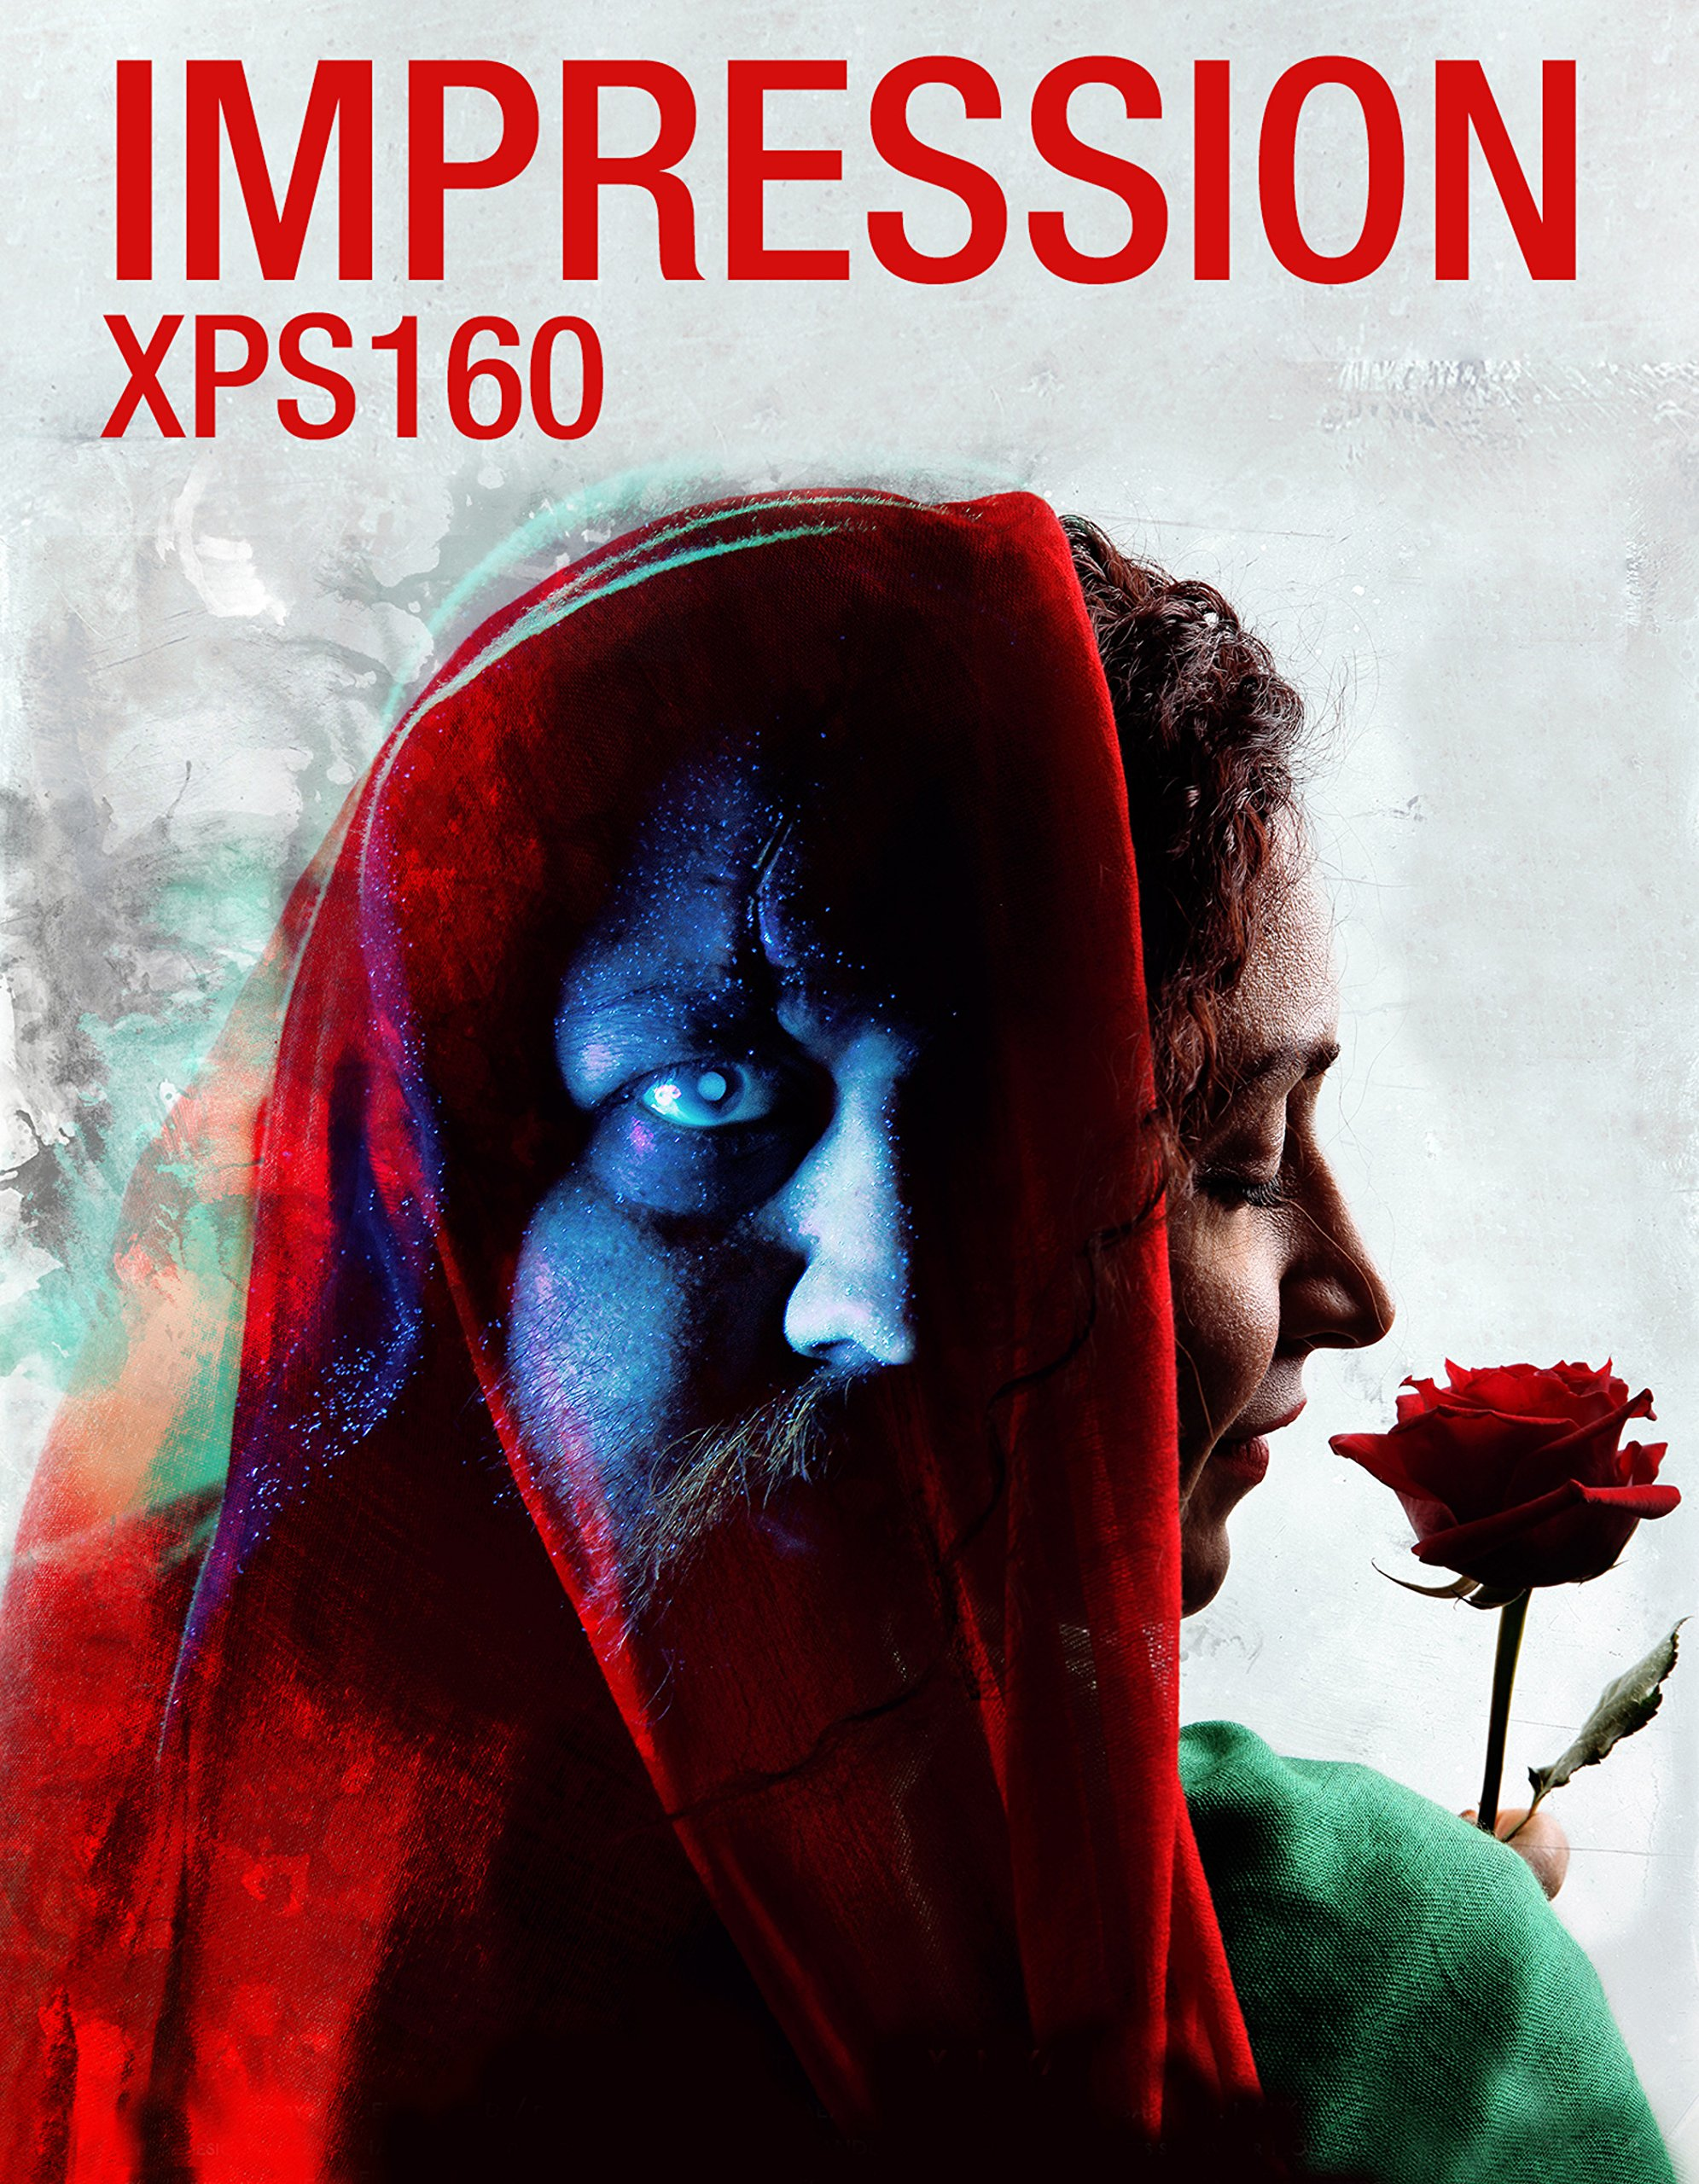 Impression-xps160 on Amazon Prime Instant Video UK